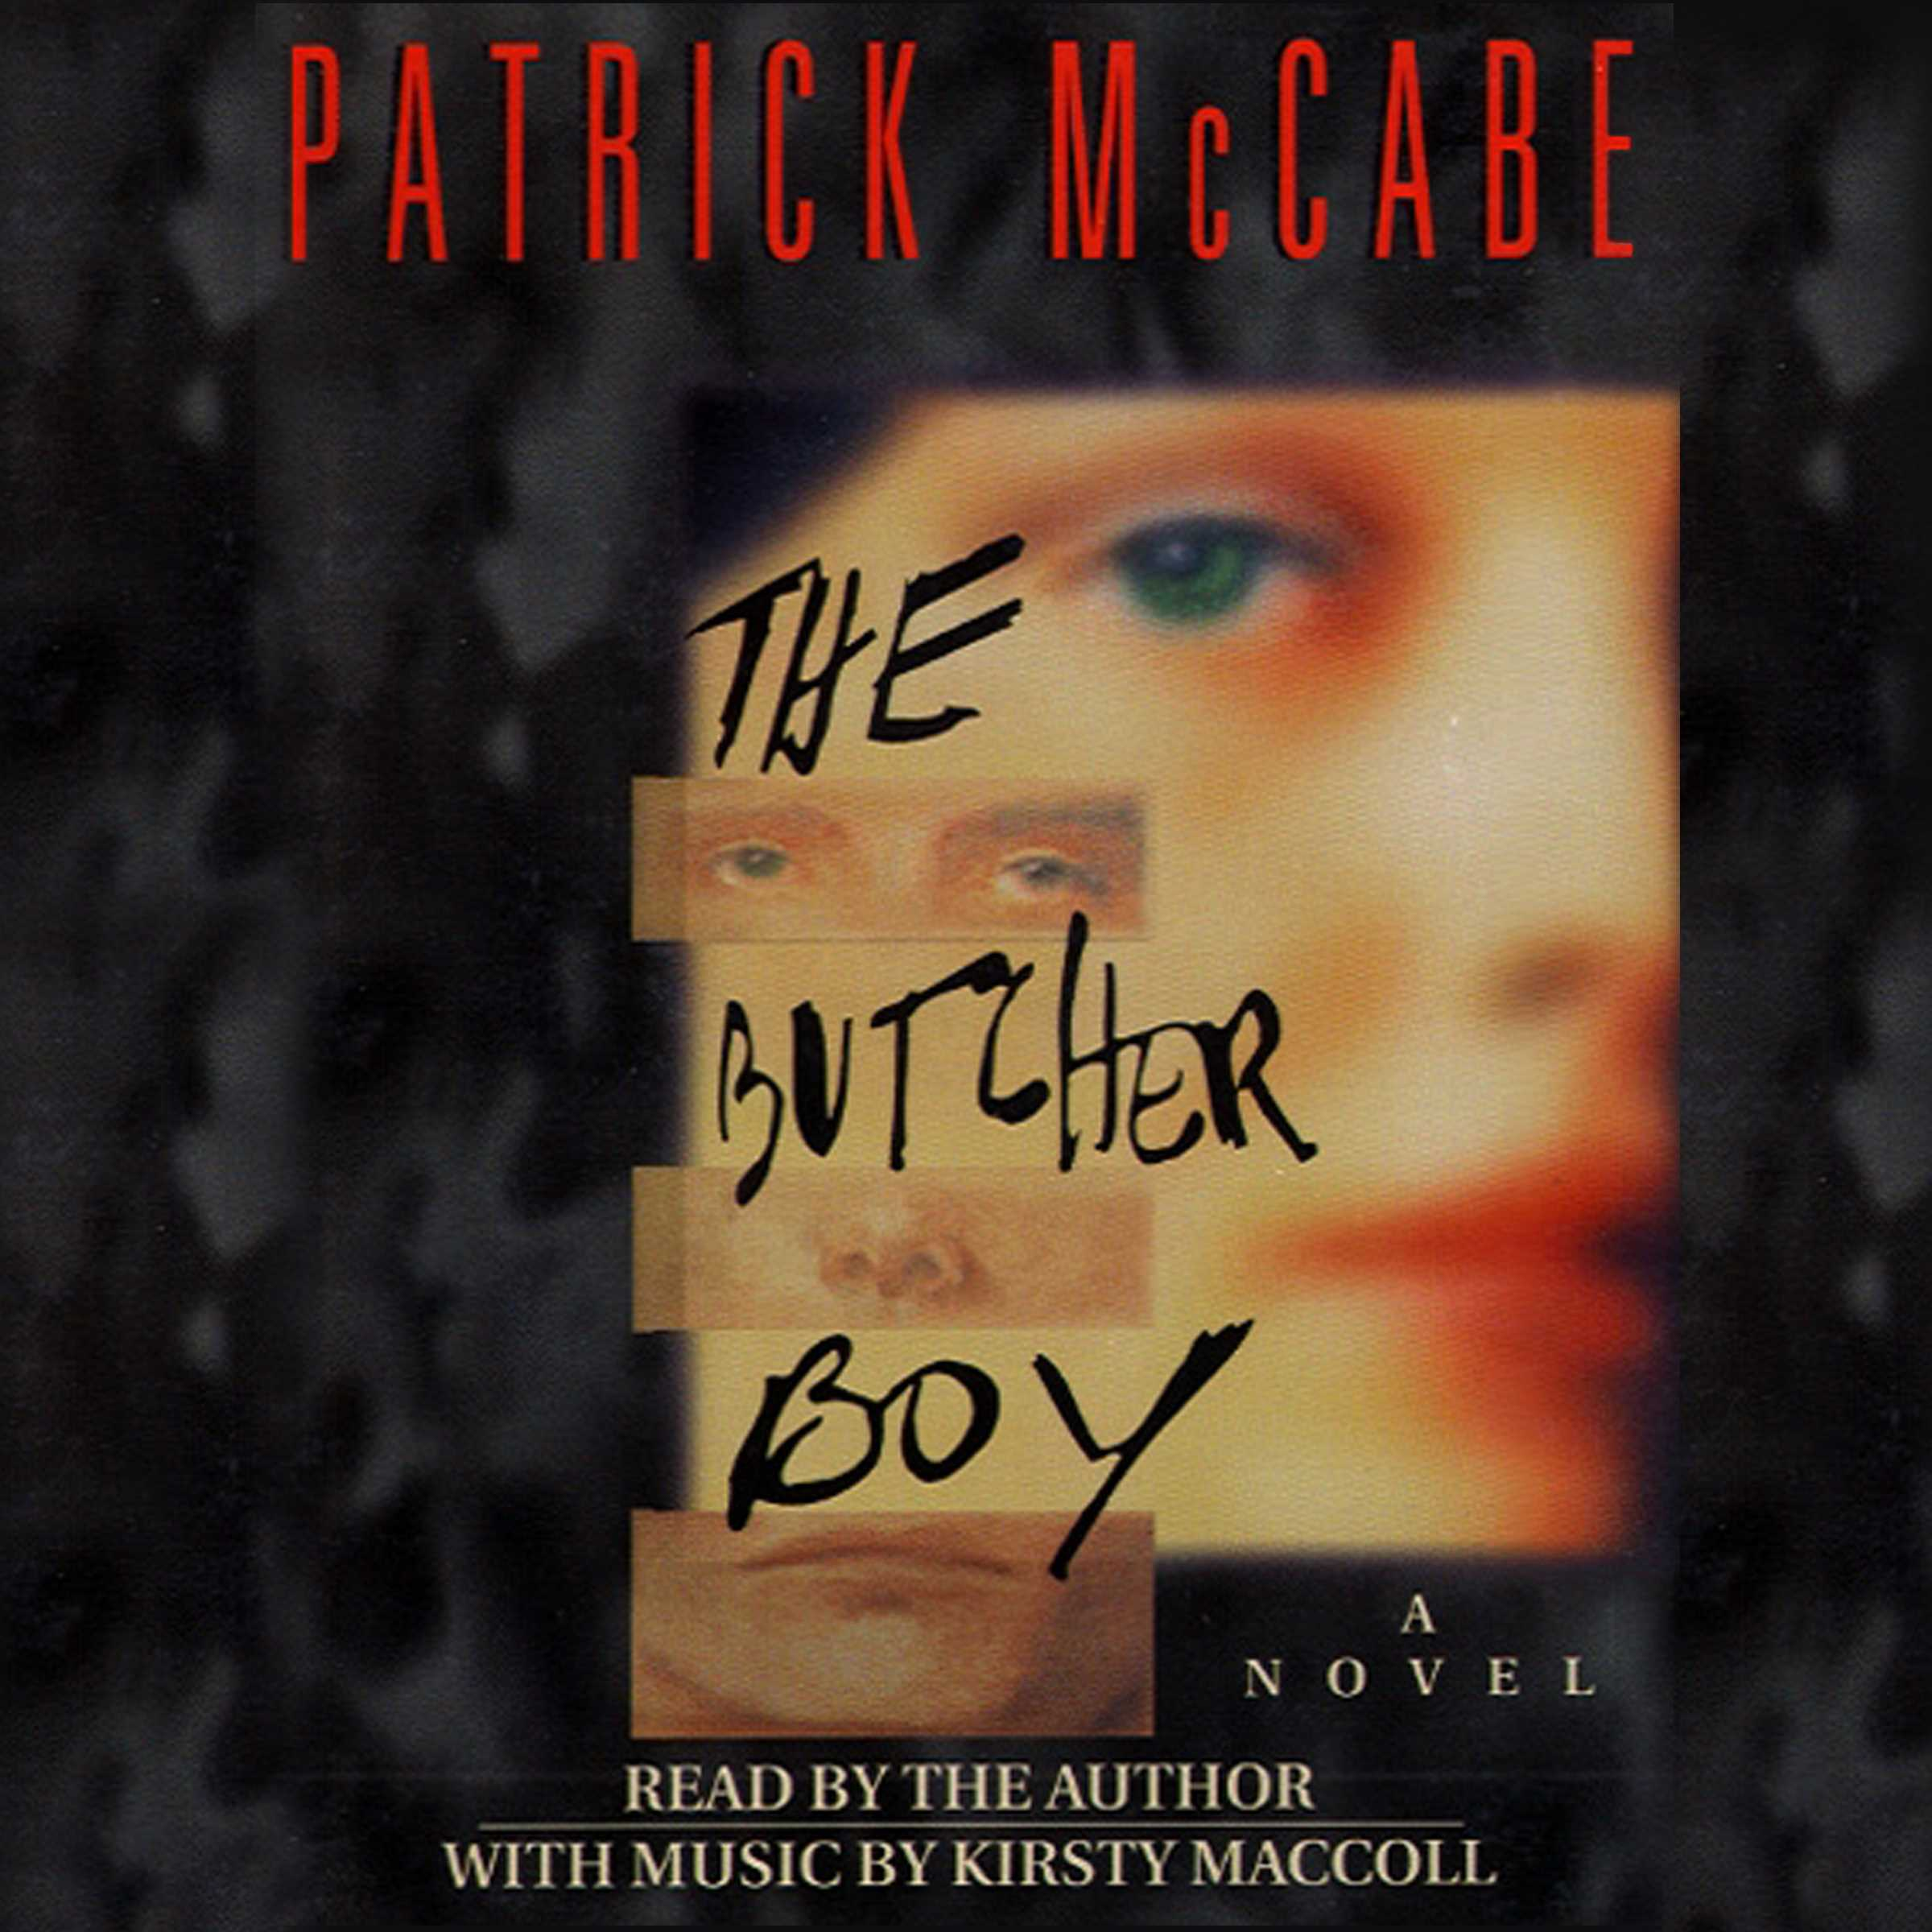 The-butcher-boy-9780743542210_hr